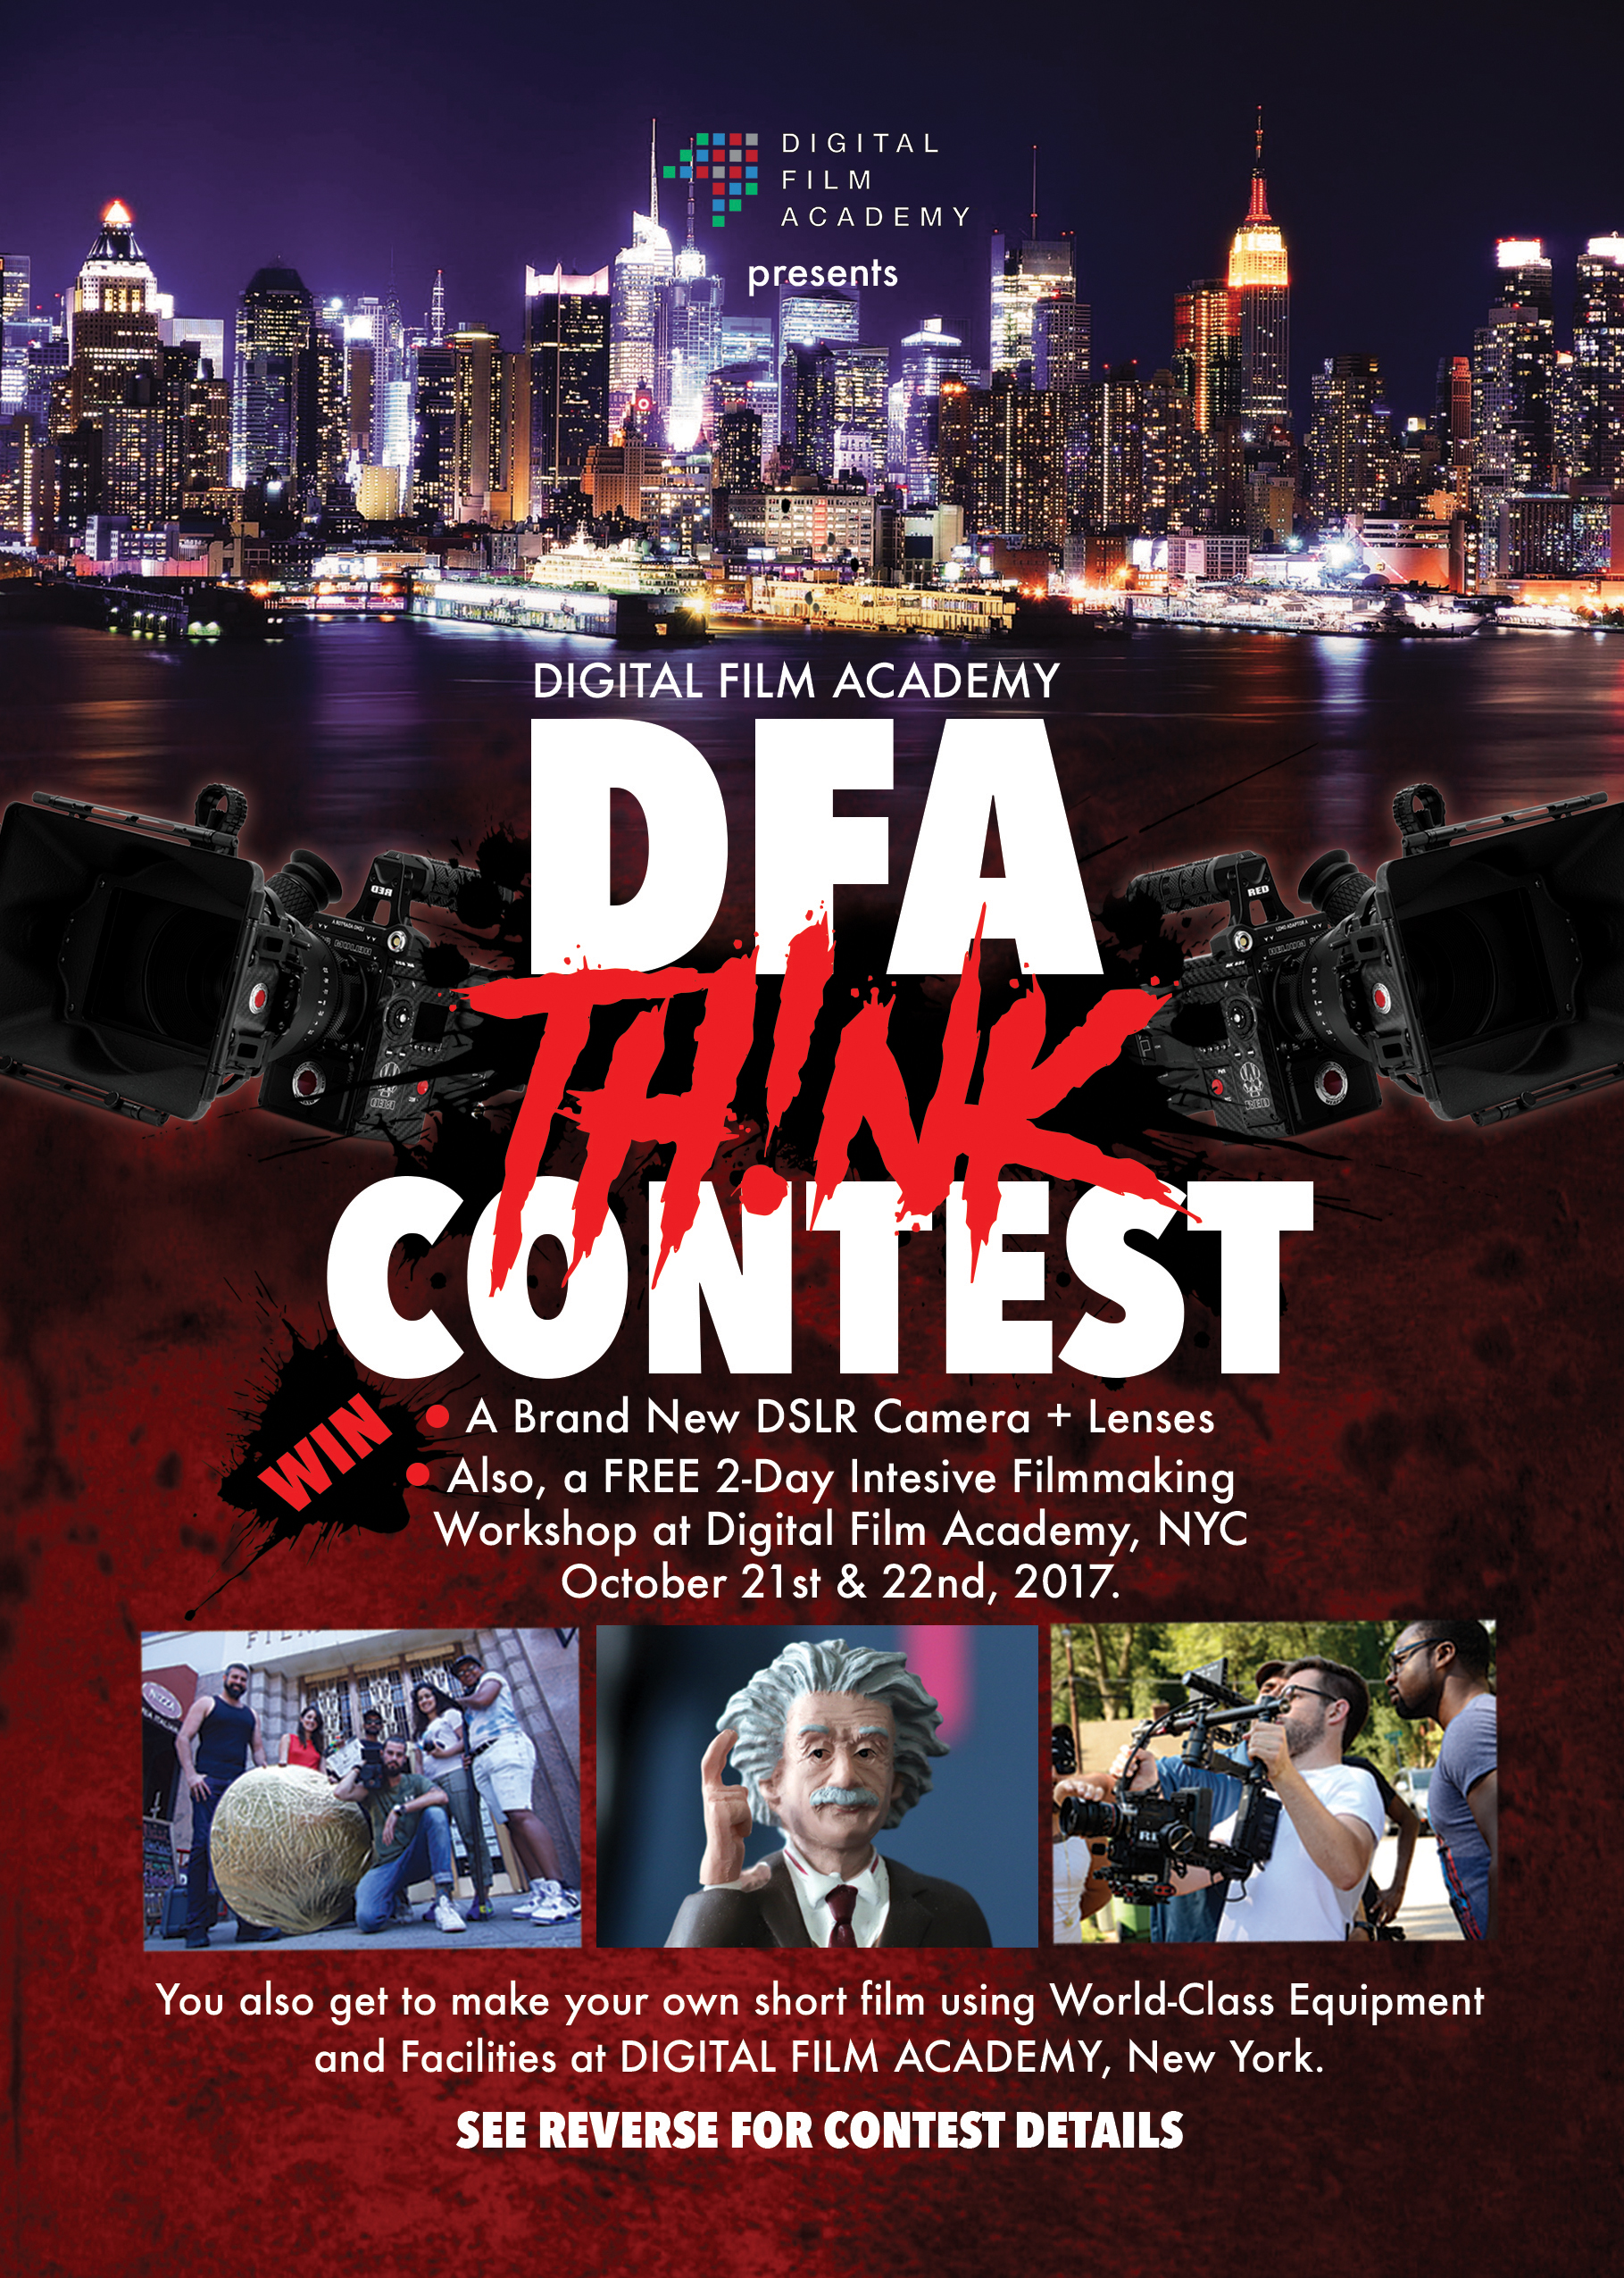 Digital Film Academy In New York Calls For Video Submissions